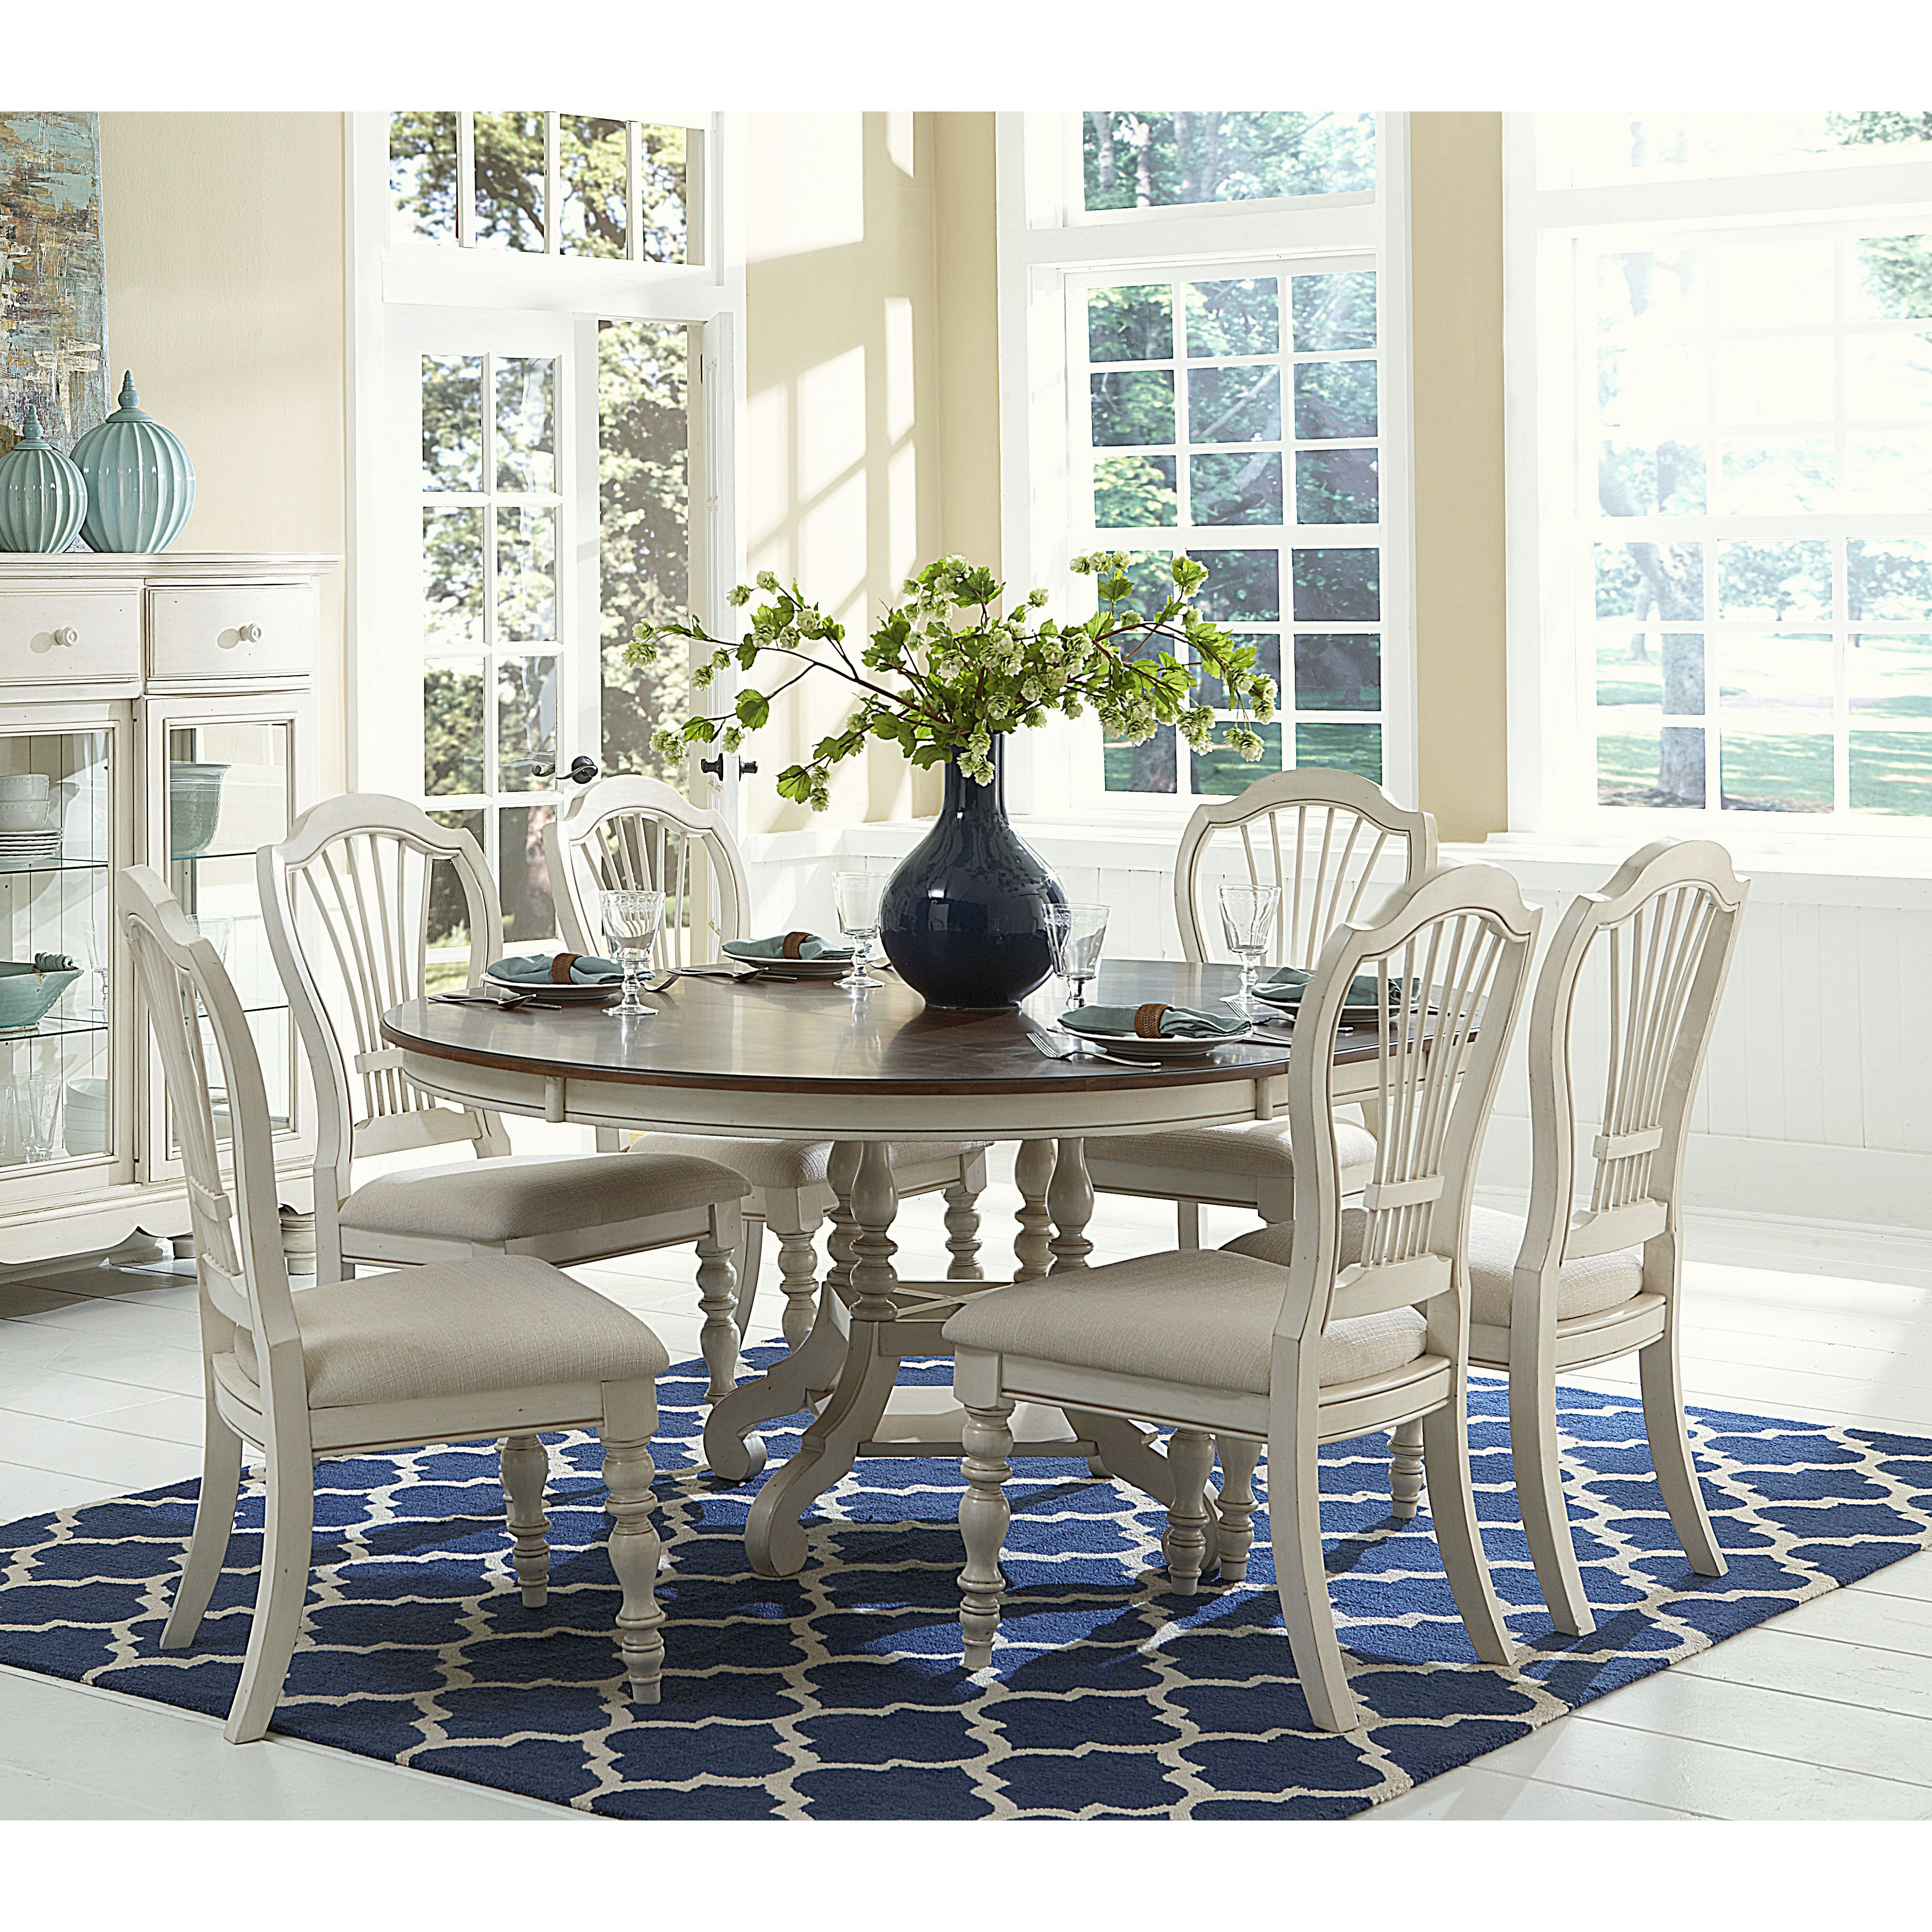 Hillsdale pine island round dining set pc ladder back chairs